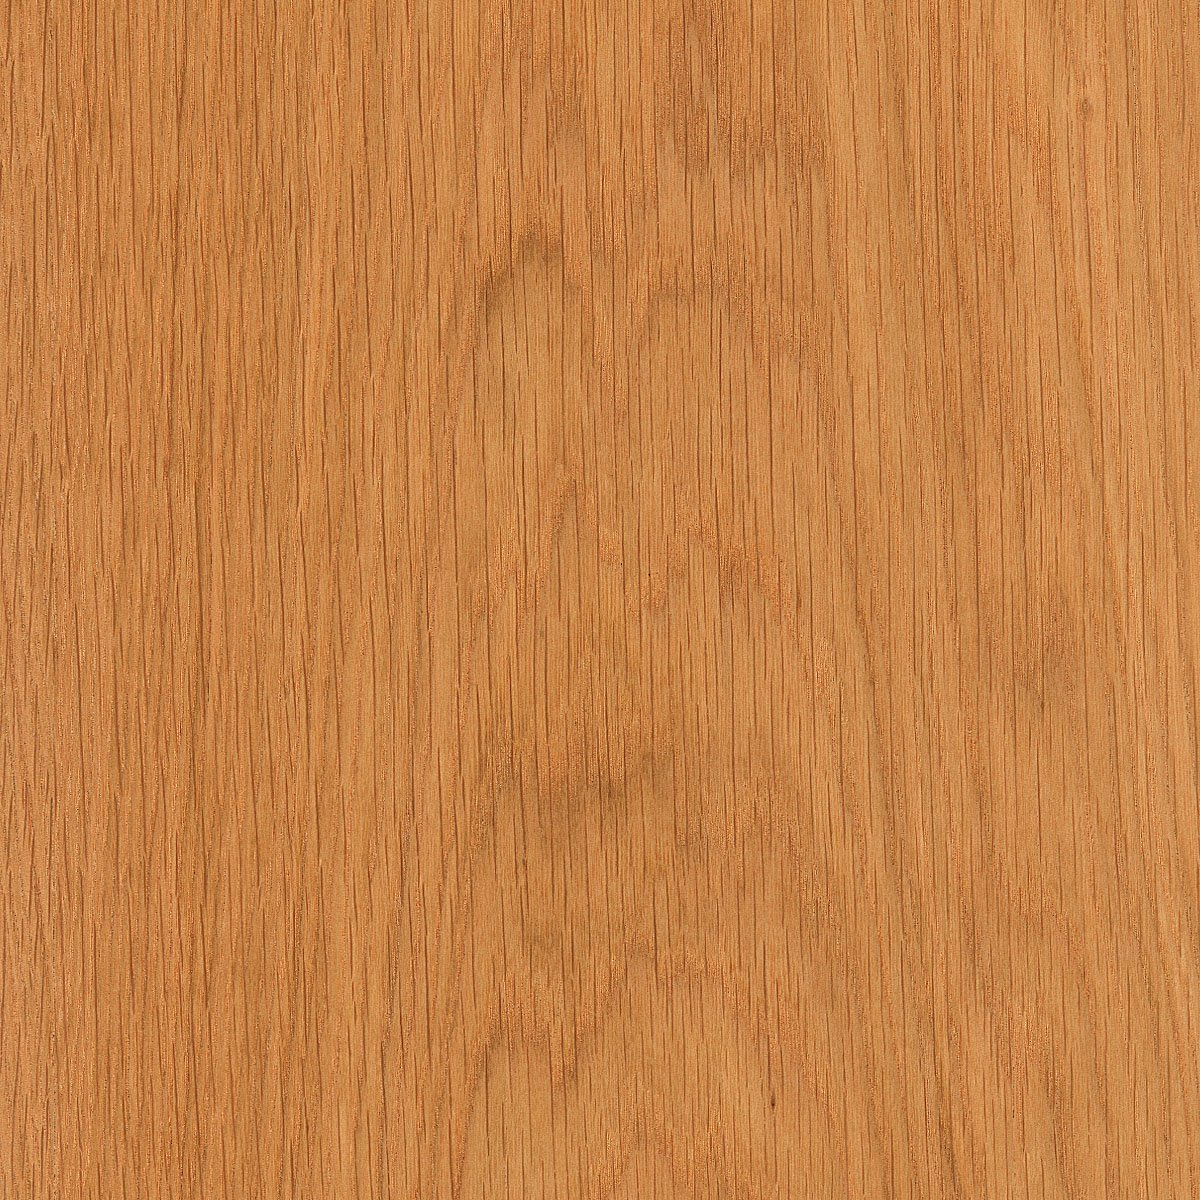 White Oak Wood Veneer B Grade 2x8 10 mil Sheet by Wood-All